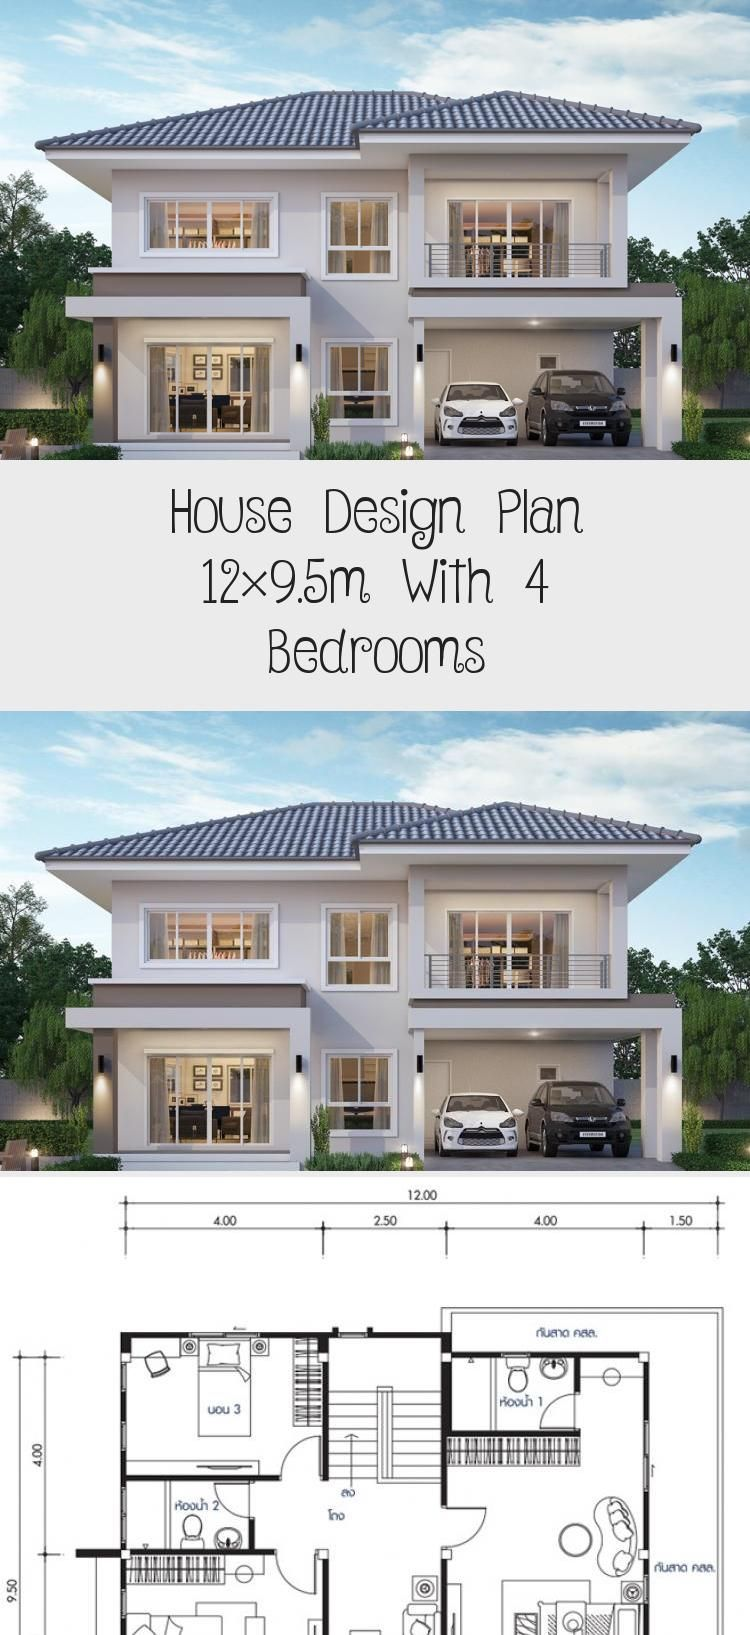 House Design Plan 12x9 5m With 4 Bedrooms Home Design With Plansearch Houseplansplanosdecasas Simpl In 2020 Home Design Plans Unique House Plans Rustic House Plans